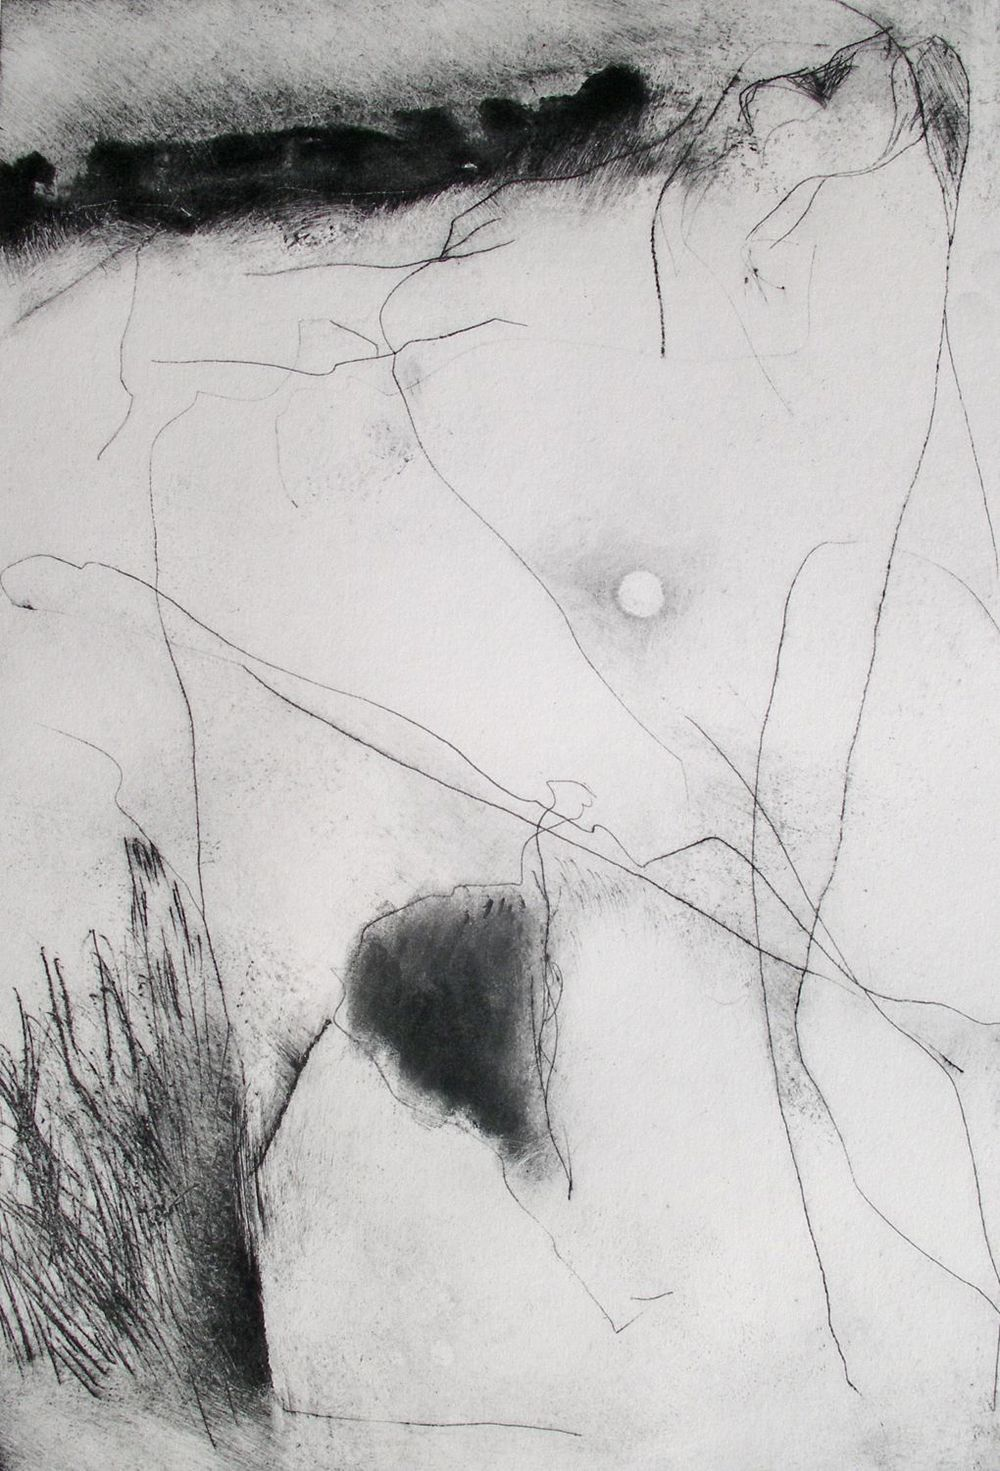 Dartmoor II [29x23cm] dry point + carbon, 2013